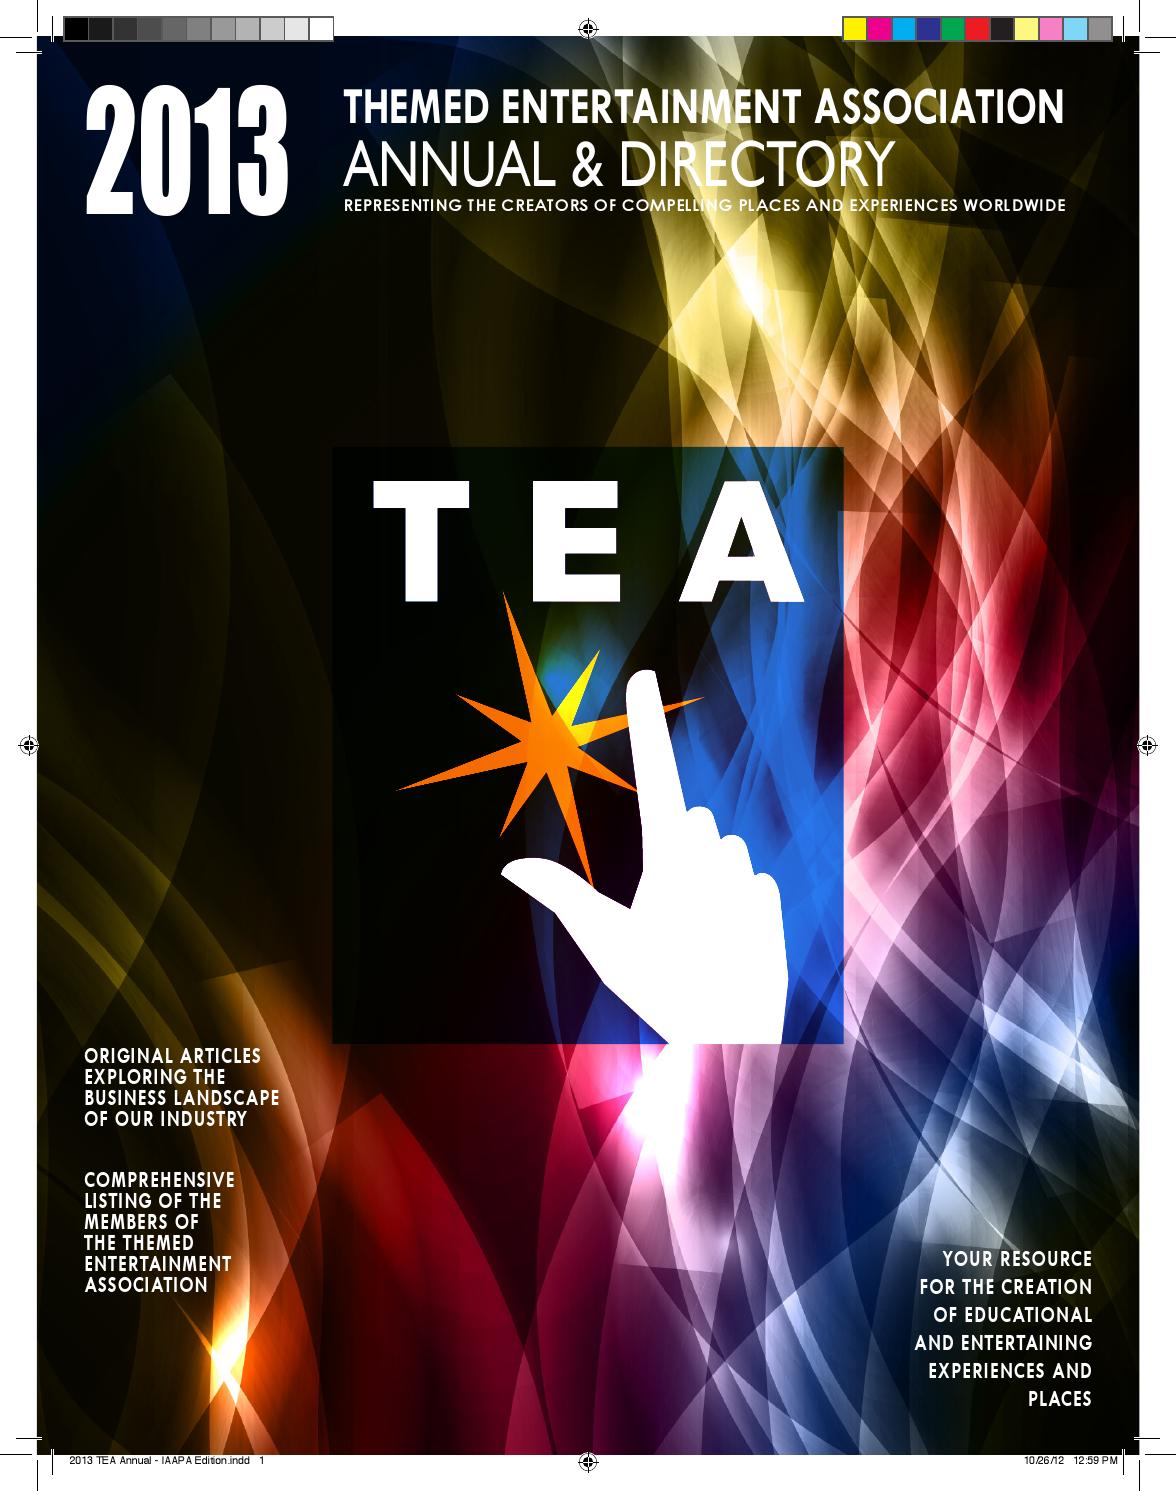 2013 Tea Annual Directory By Themed Entertainment Association Issuu 1960 Ford Ranchero Wiring Harness